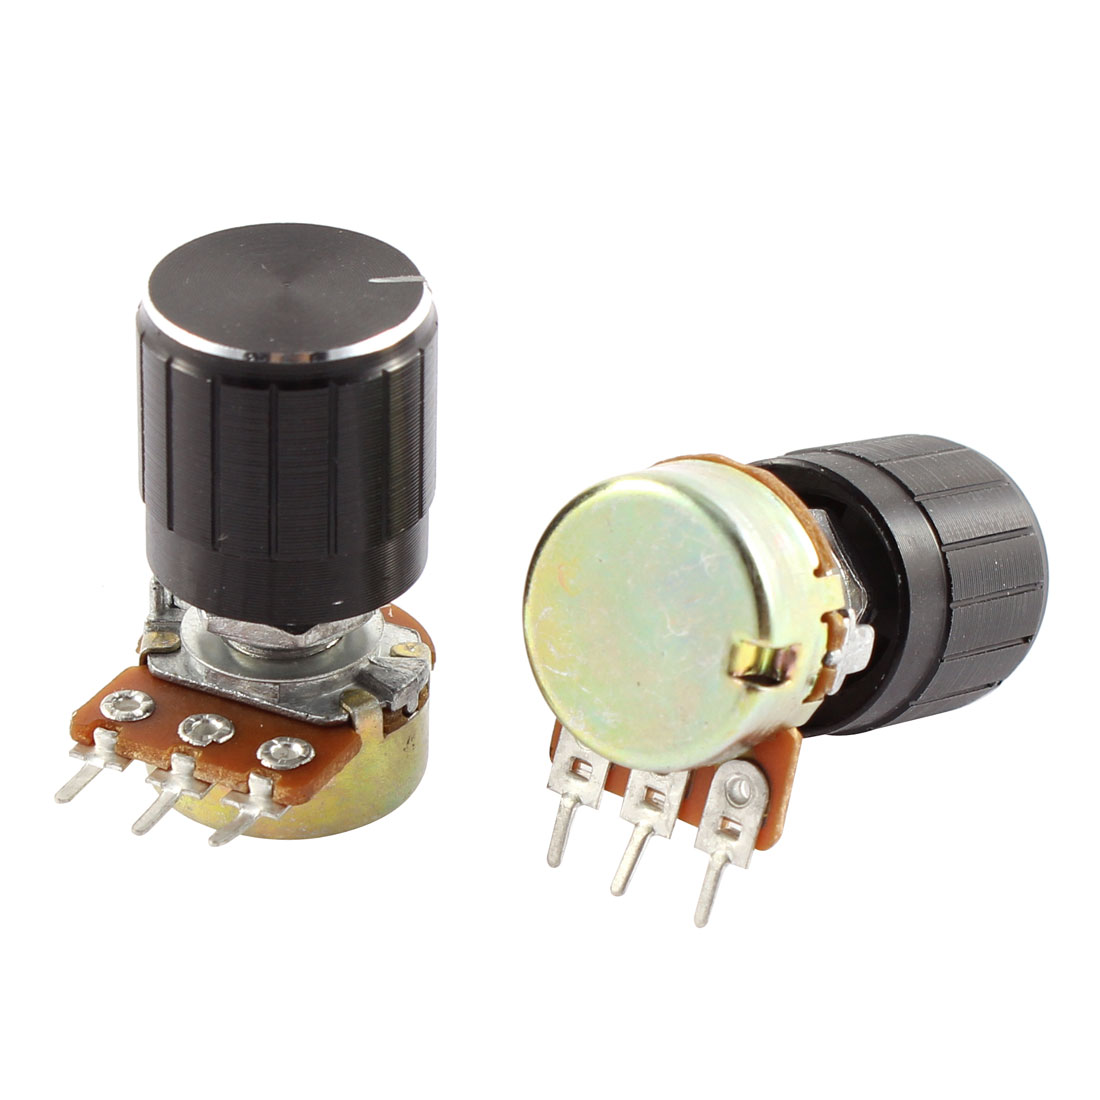 2pcs 10K OHM Single Linear Type B Audio Taper Rotary Potentiometer B10K w Knobs